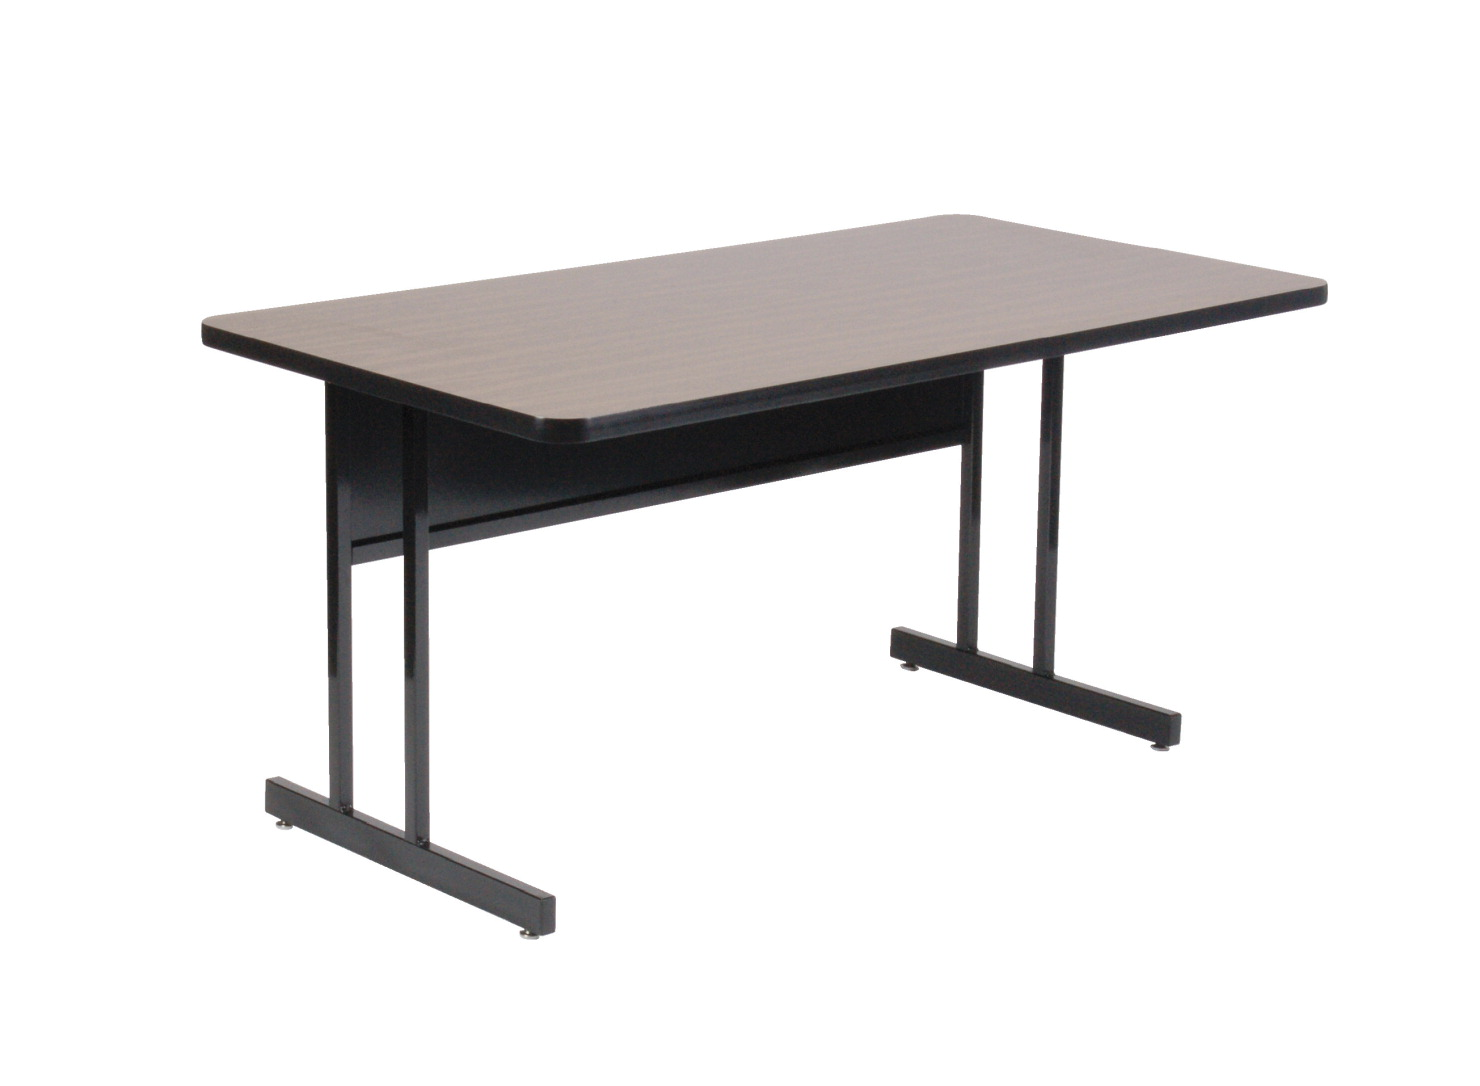 Correll Rectangle Laminate Top Desk Height Computer Table, 24 x 72 x 29 Inches, Various Options